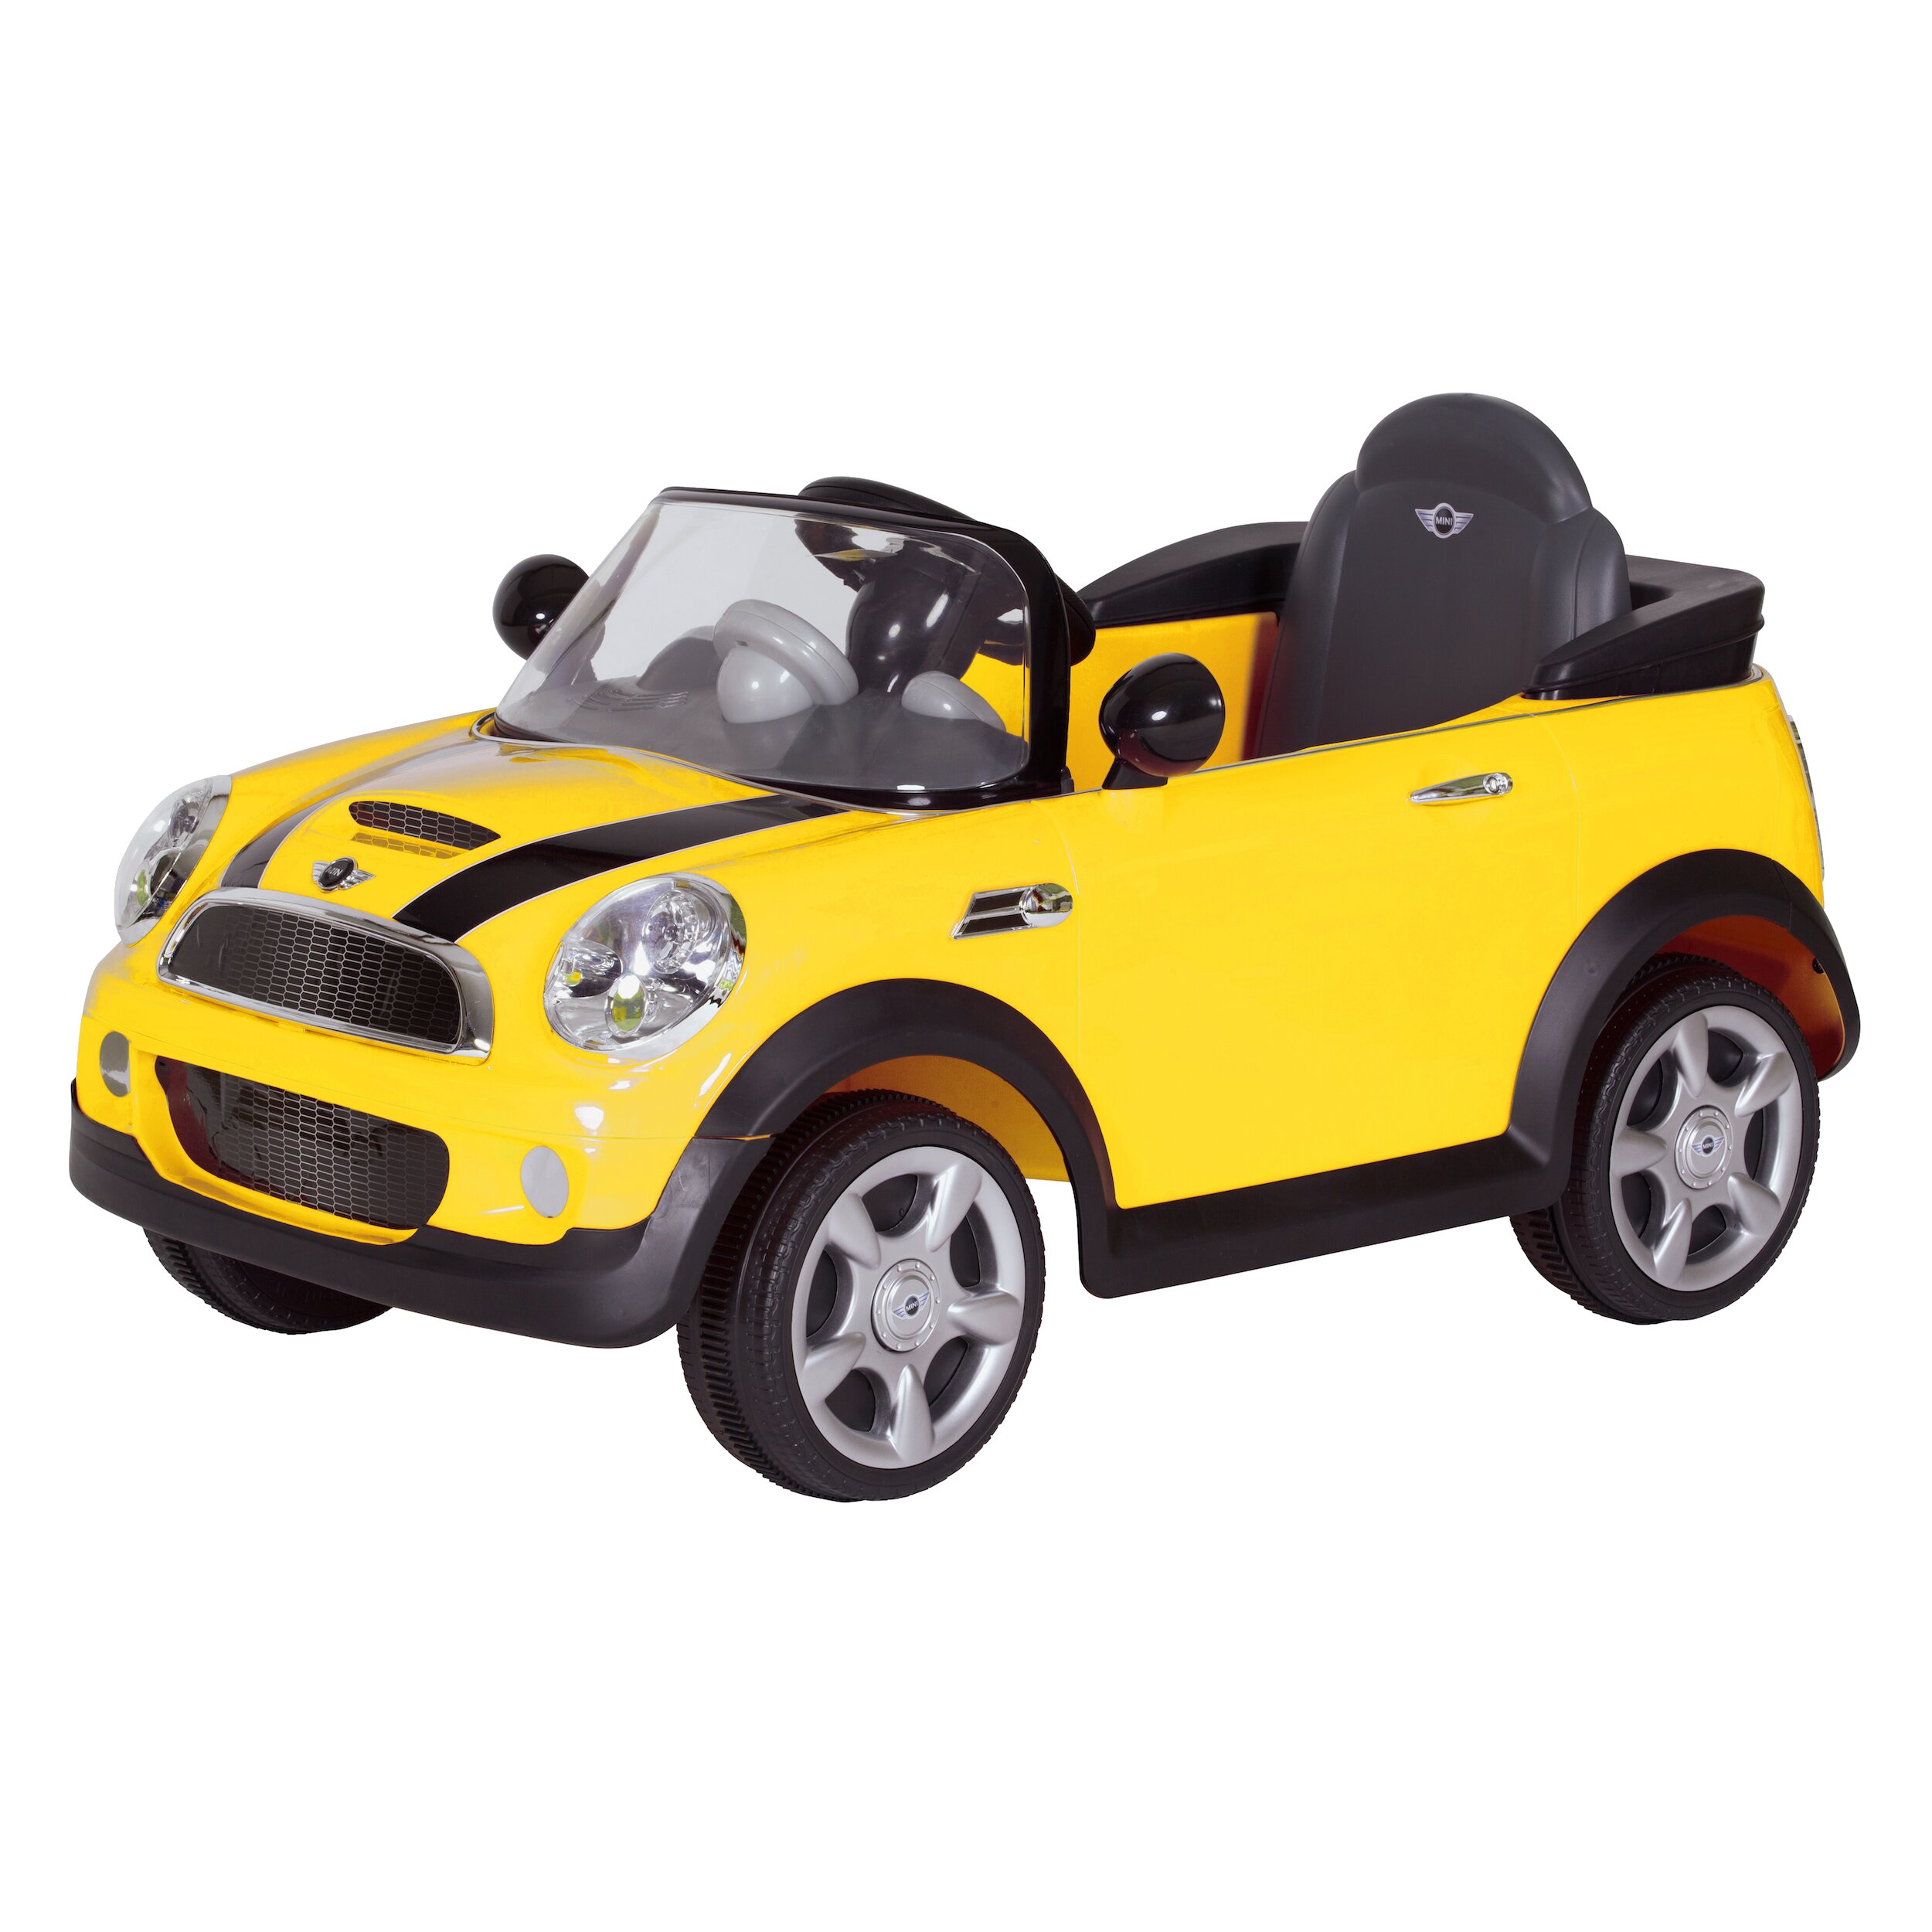 rollplay mini cooper 6v battery powered car reviews wayfair. Black Bedroom Furniture Sets. Home Design Ideas